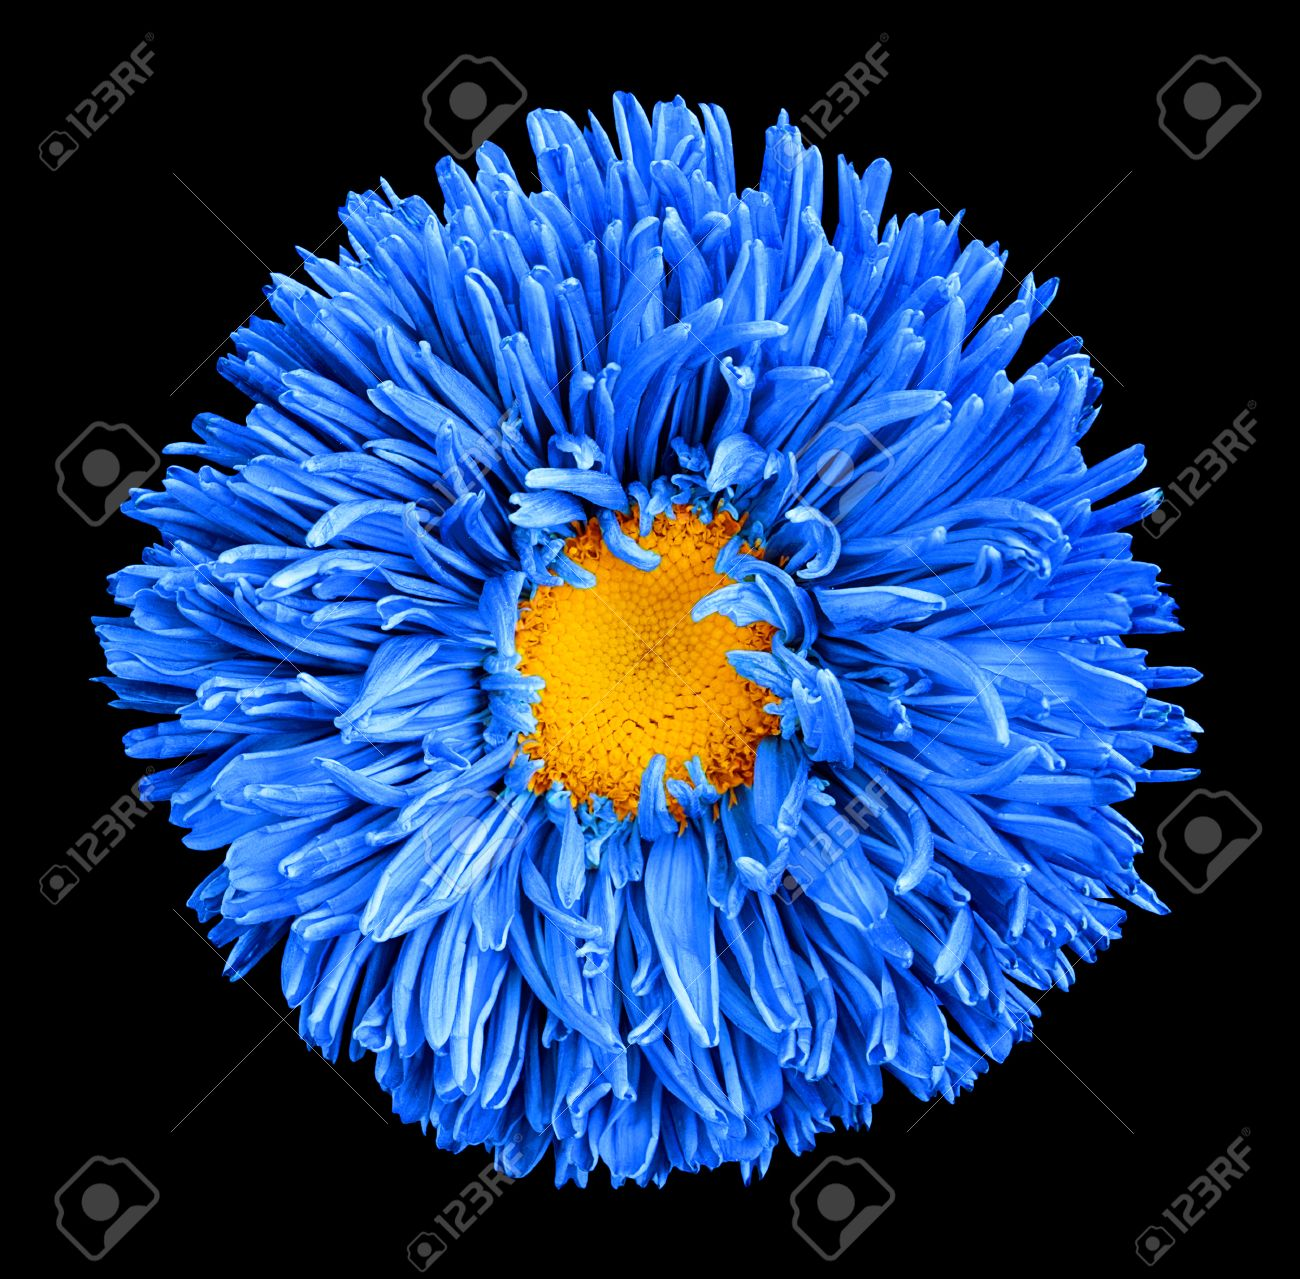 Blue Aster Flower With Yellow Heart Macro Photography Isolated